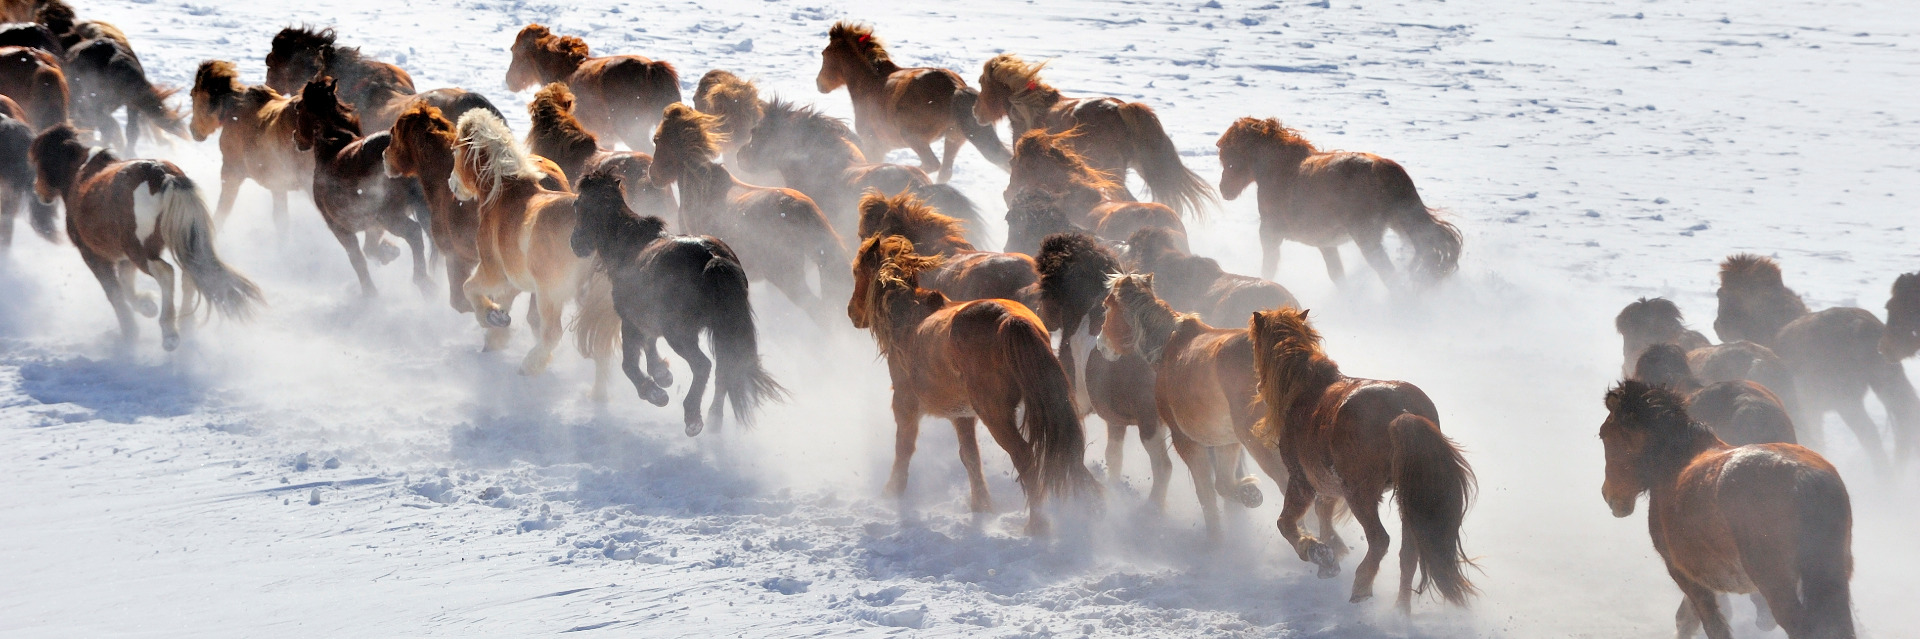 wild-horses-running-picture-id682125704